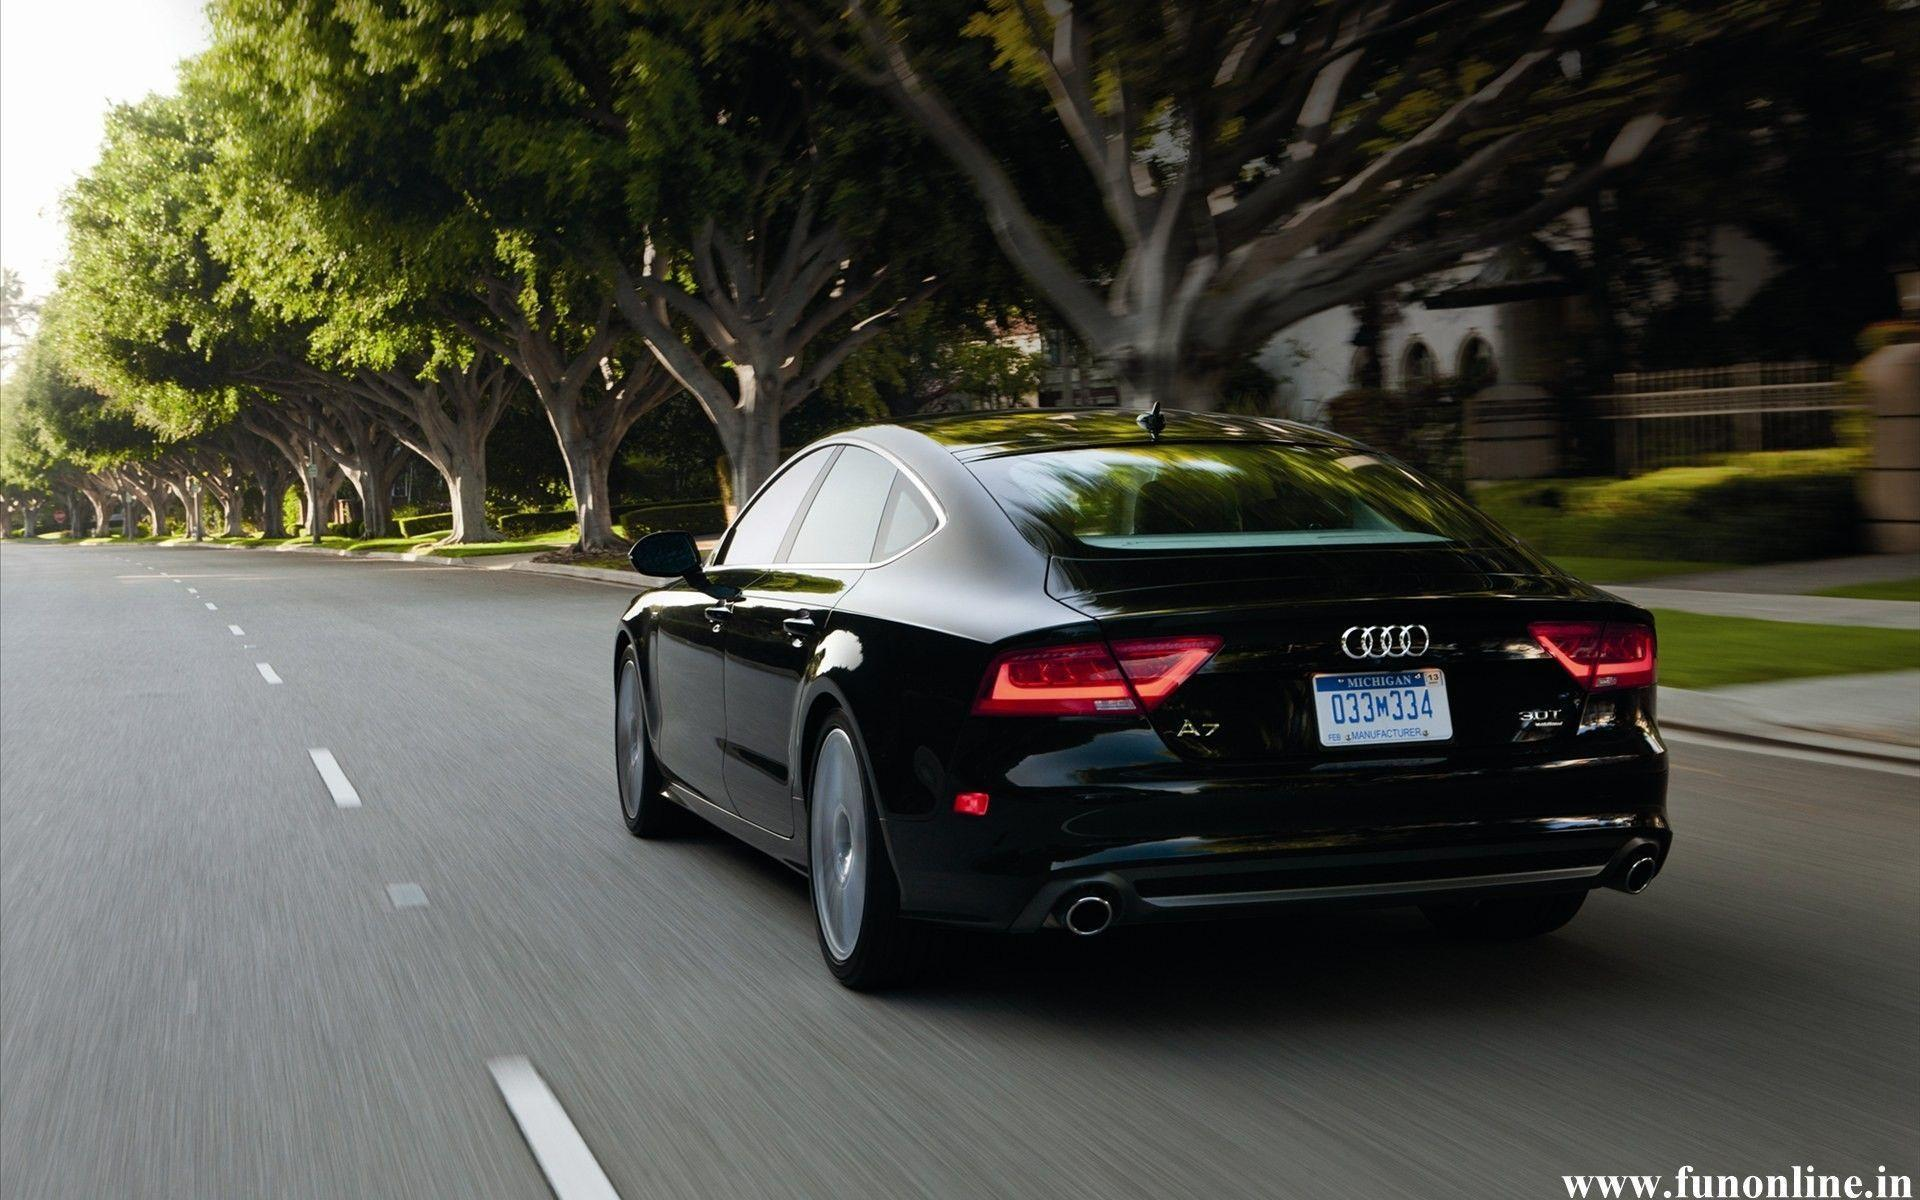 Audi A7 Wallpapers, Full HDQ Audi A7 Pictures and Wallpapers